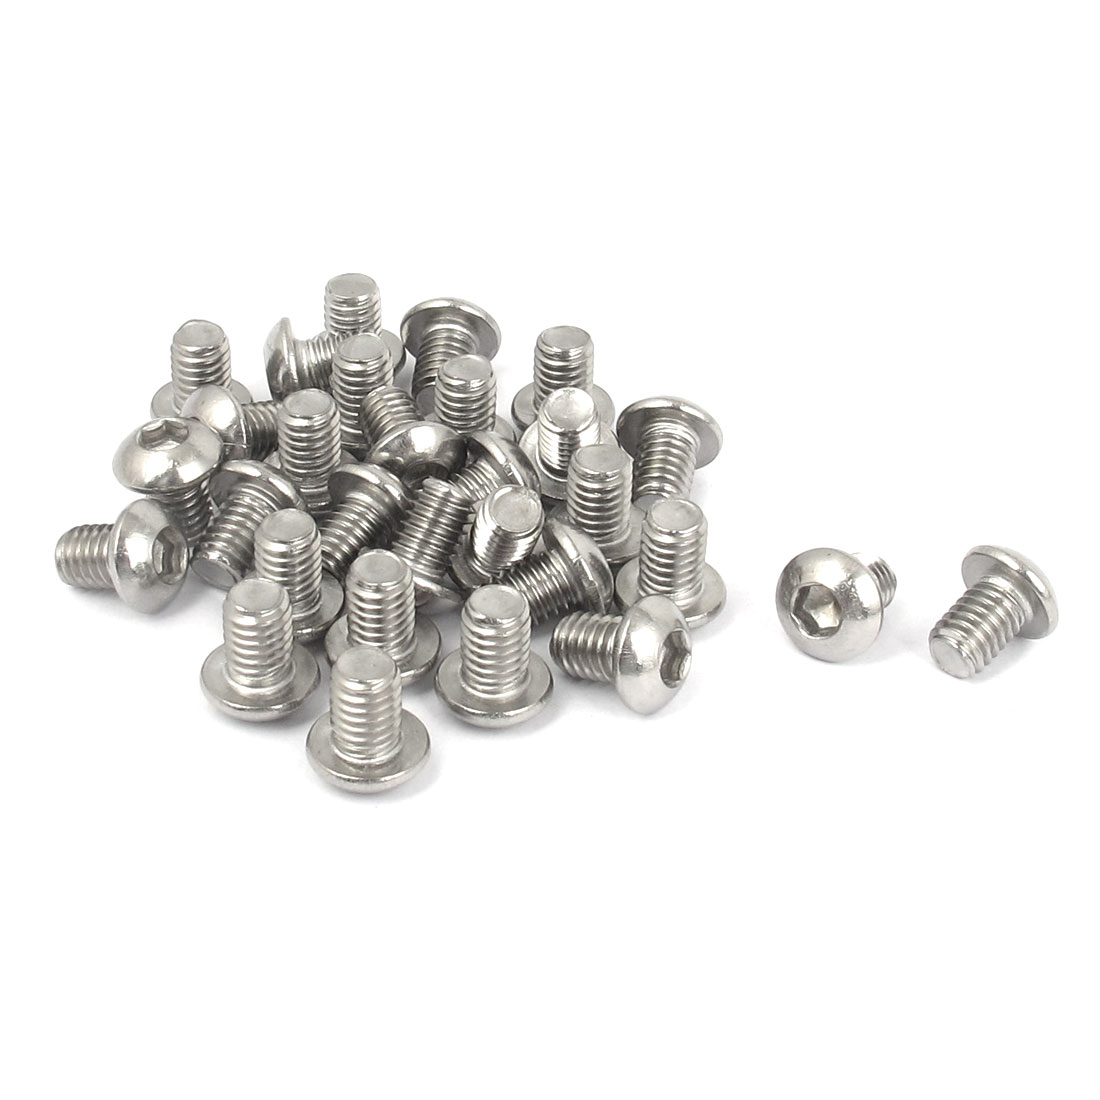 M6x8mm 304 Stainless Steel Hex Socket Machine Countersunk Round Head Screw Bolts 30PCS